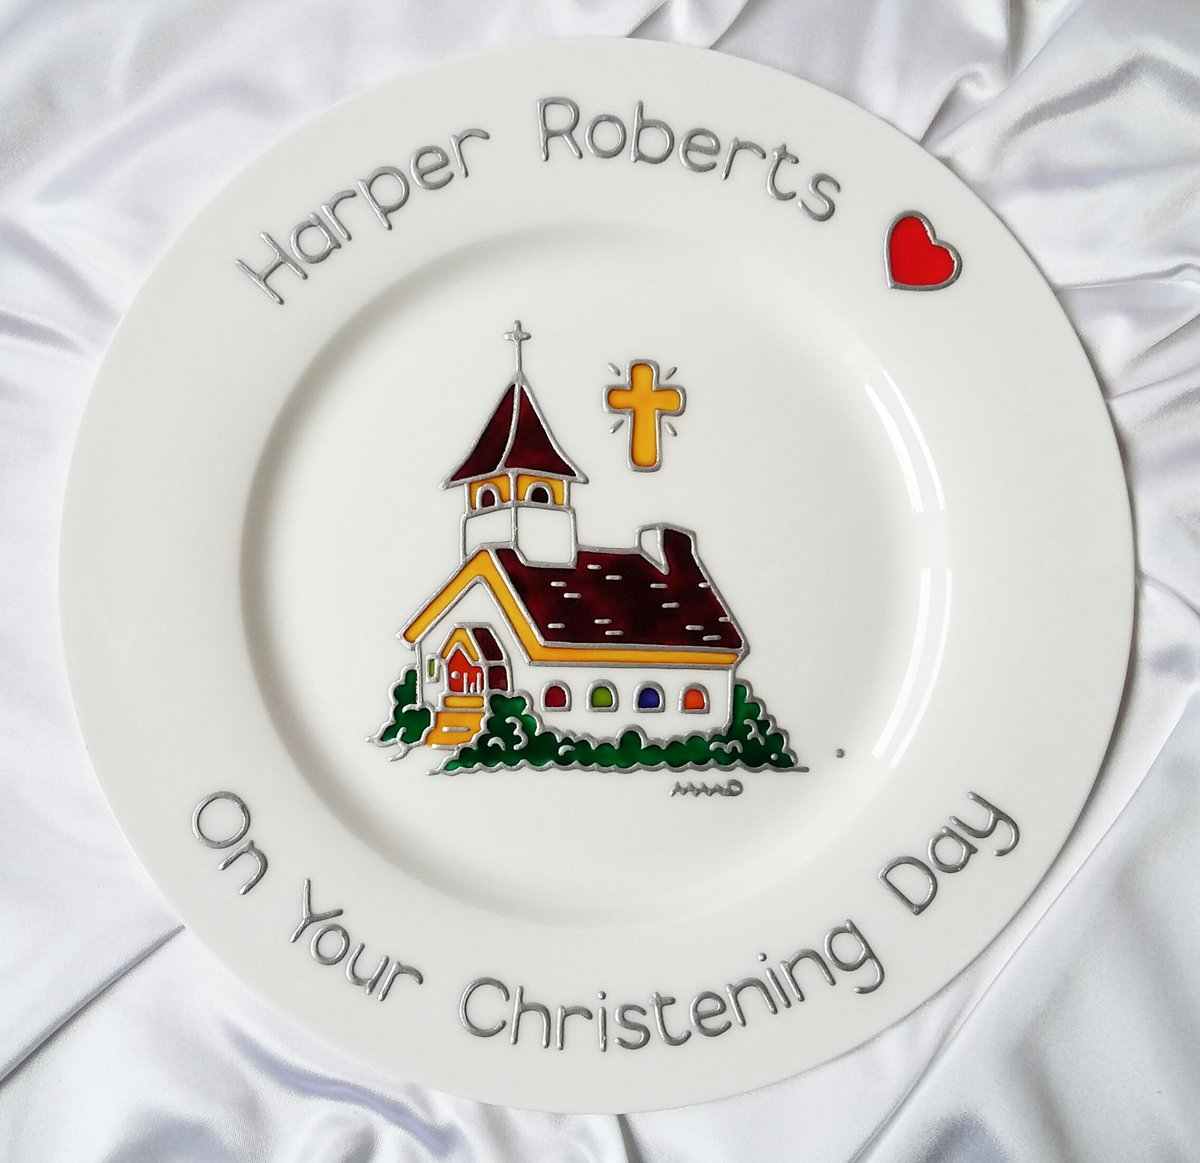 💒#MHHSBD #TheCraftersUK #christenings are possible again. You can begin to make plans. My #Church plate is a  unique #babygift 🎁  #craftbizparty #family #GodMorningSunday #namingday #UKGiftAM #baptism #CatholicTwitter #SundayService #religious #Christian